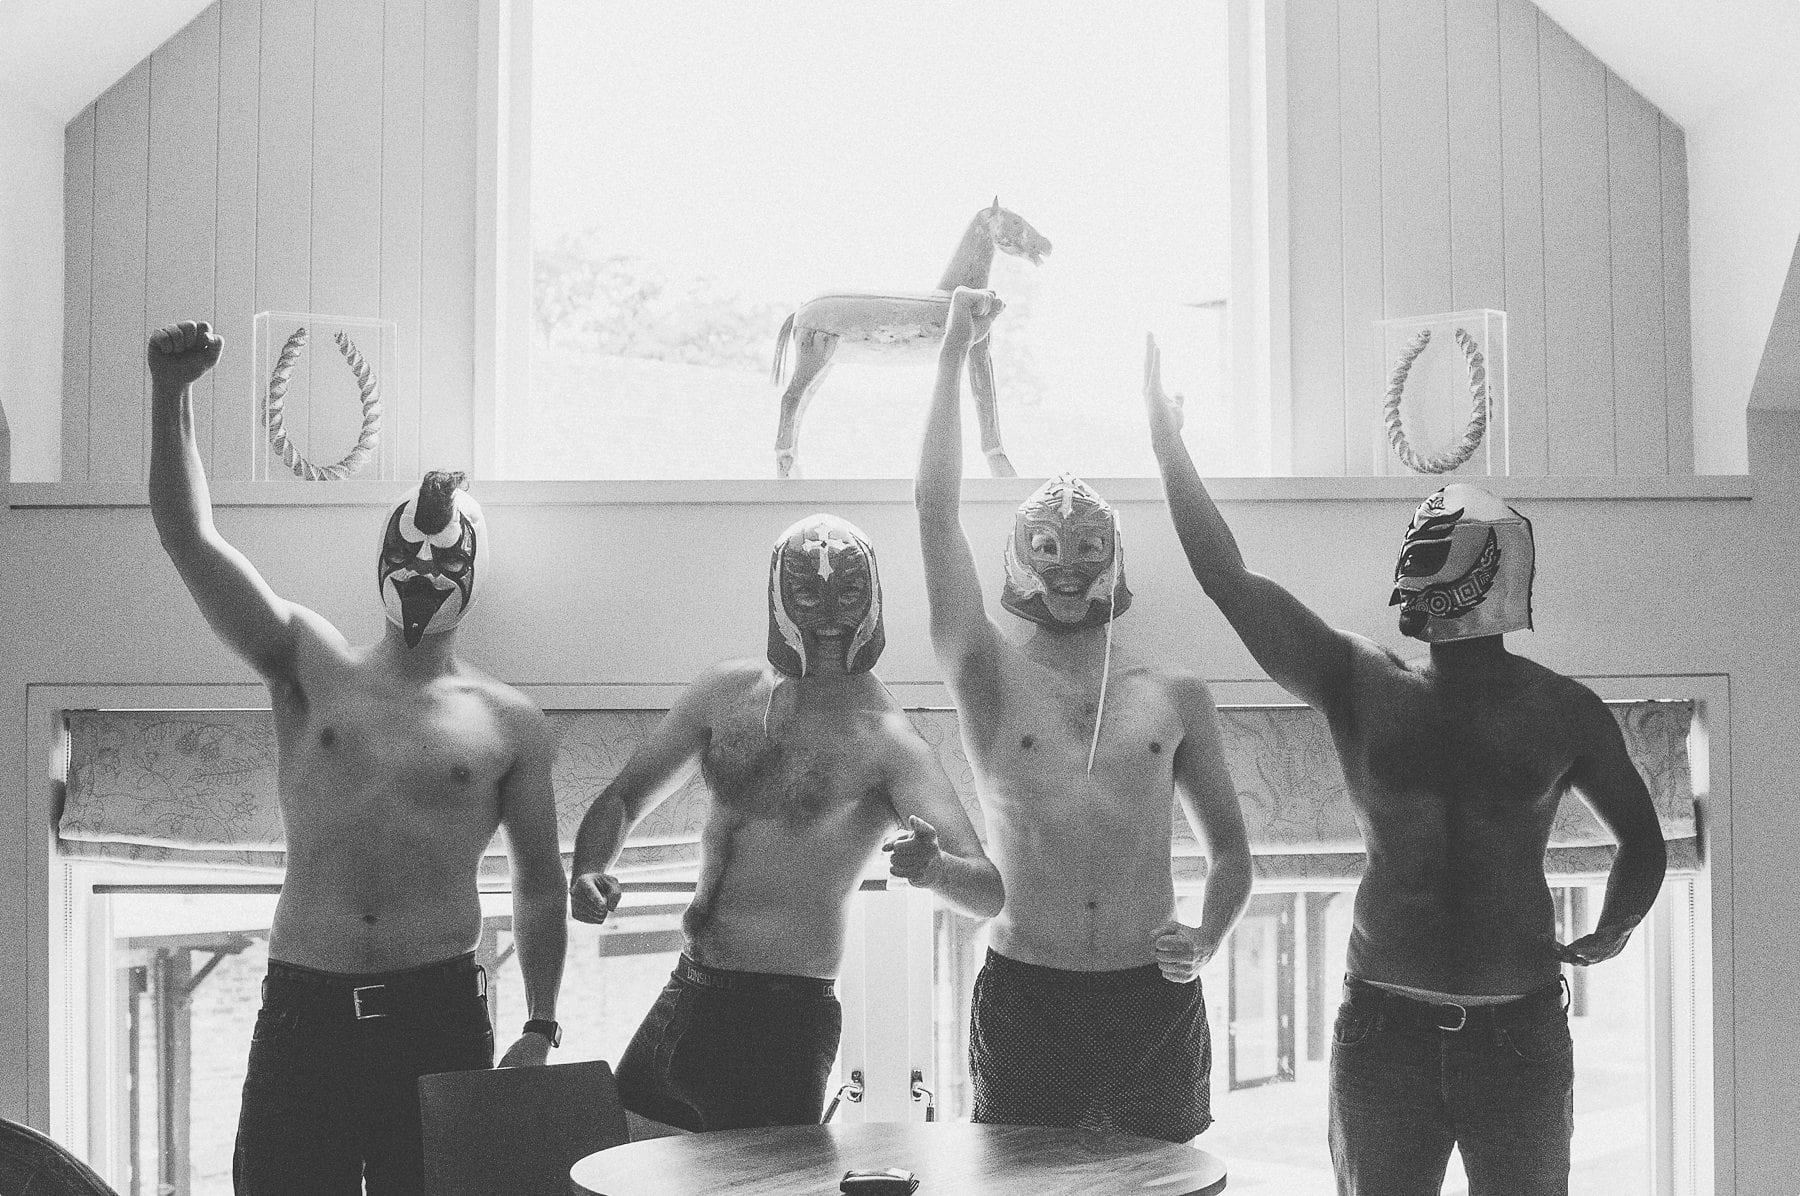 Groom and groomsmen wearing boxershorts and Mexican wrestling masks